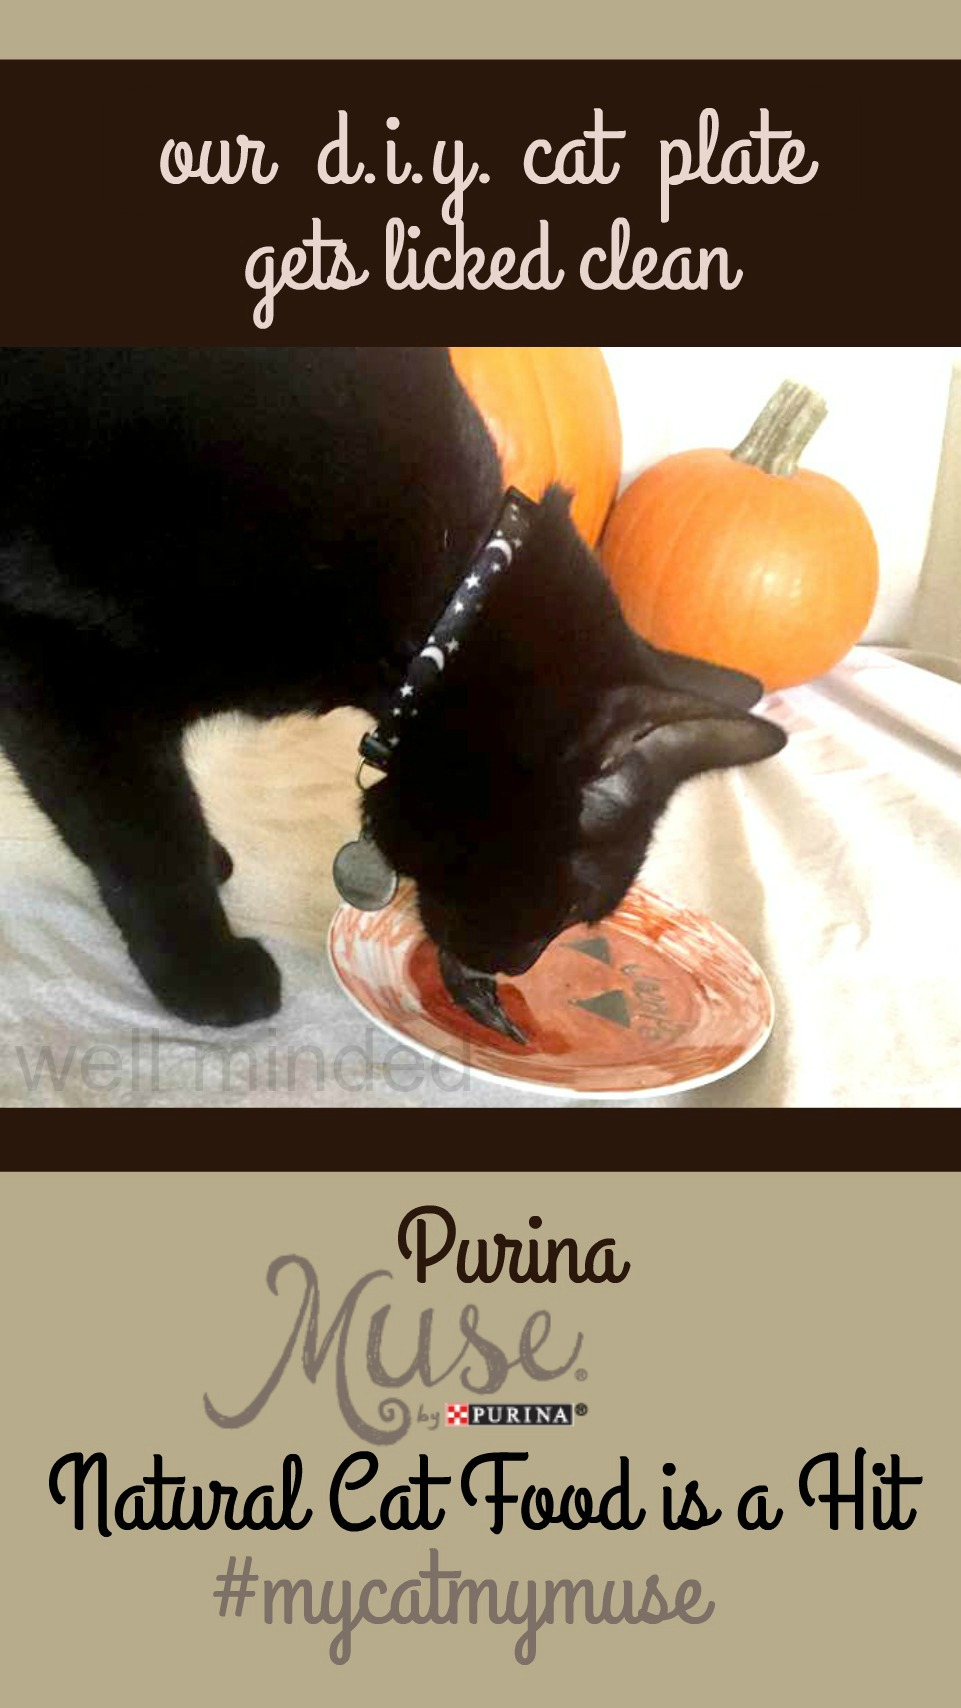 Our DIY Cat Plate Gets Licked Clean: Purina Muse® Natural Cat Food is a Hit. #MyCatMyMuse wellmindedpets.com